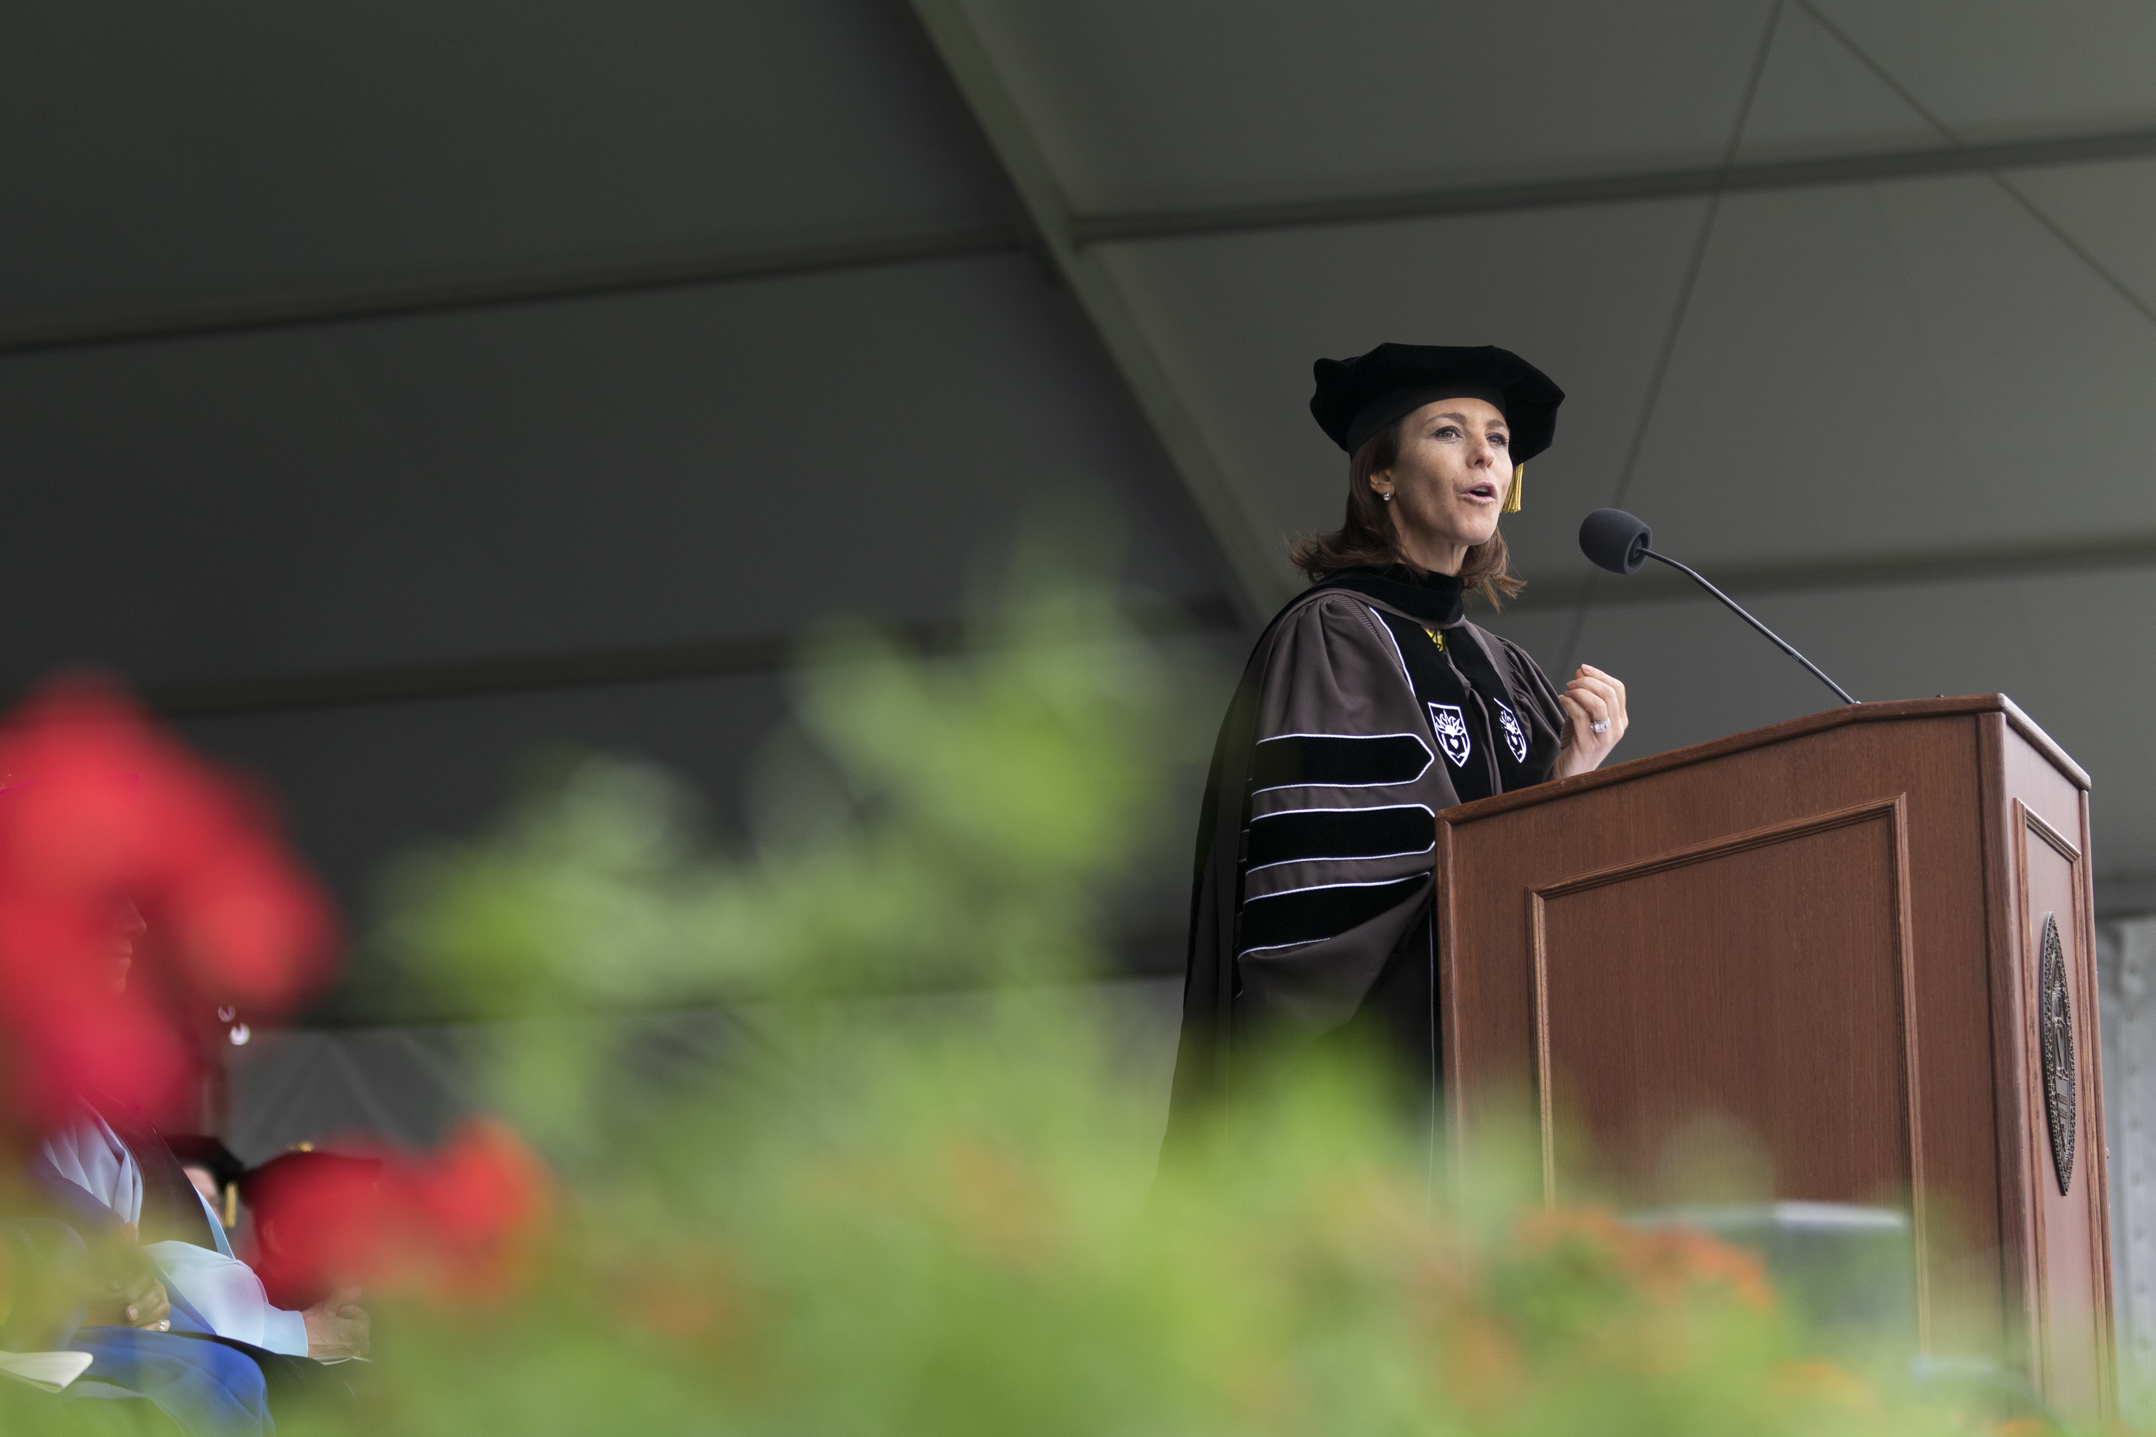 Stephanie Ruhle, '97, delivers her commencement speech Monday, May 22, 2017, in Goodman Stadium. Ruhle is an anchor at MSNBC and a correspondant for NBC News. (Roshan Giyanani/B&W Staff)